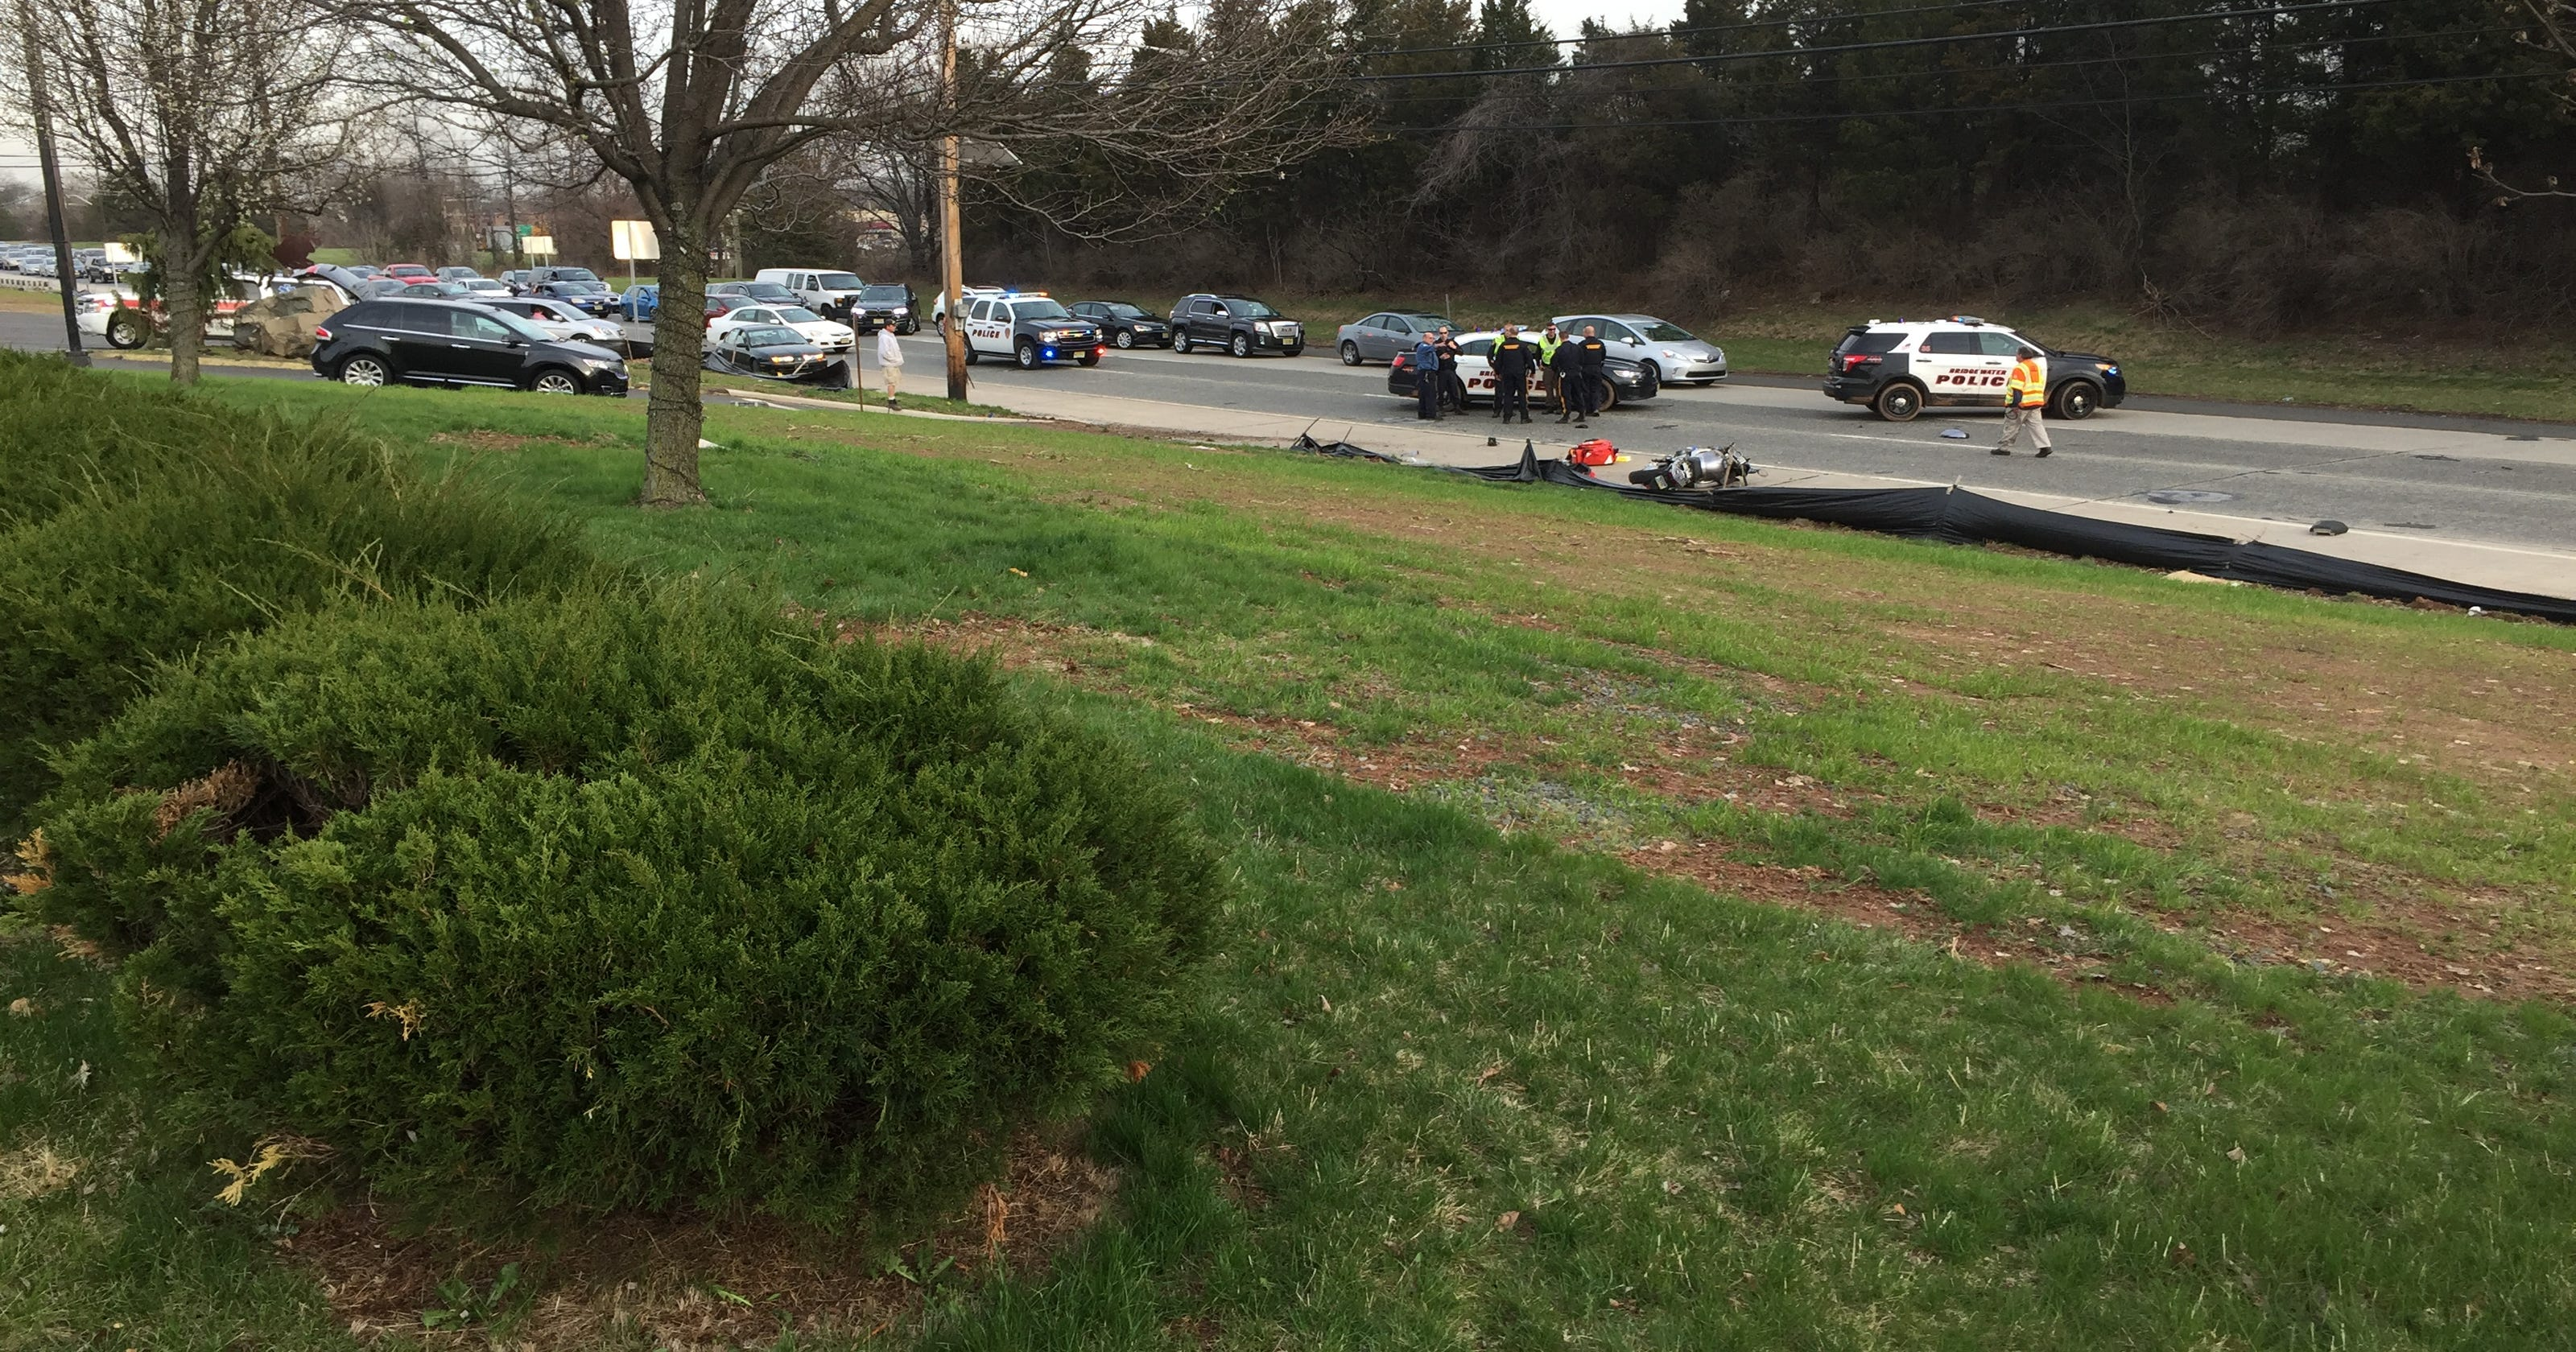 Pennsylvania man injured in Route 22 motorcycle accident in